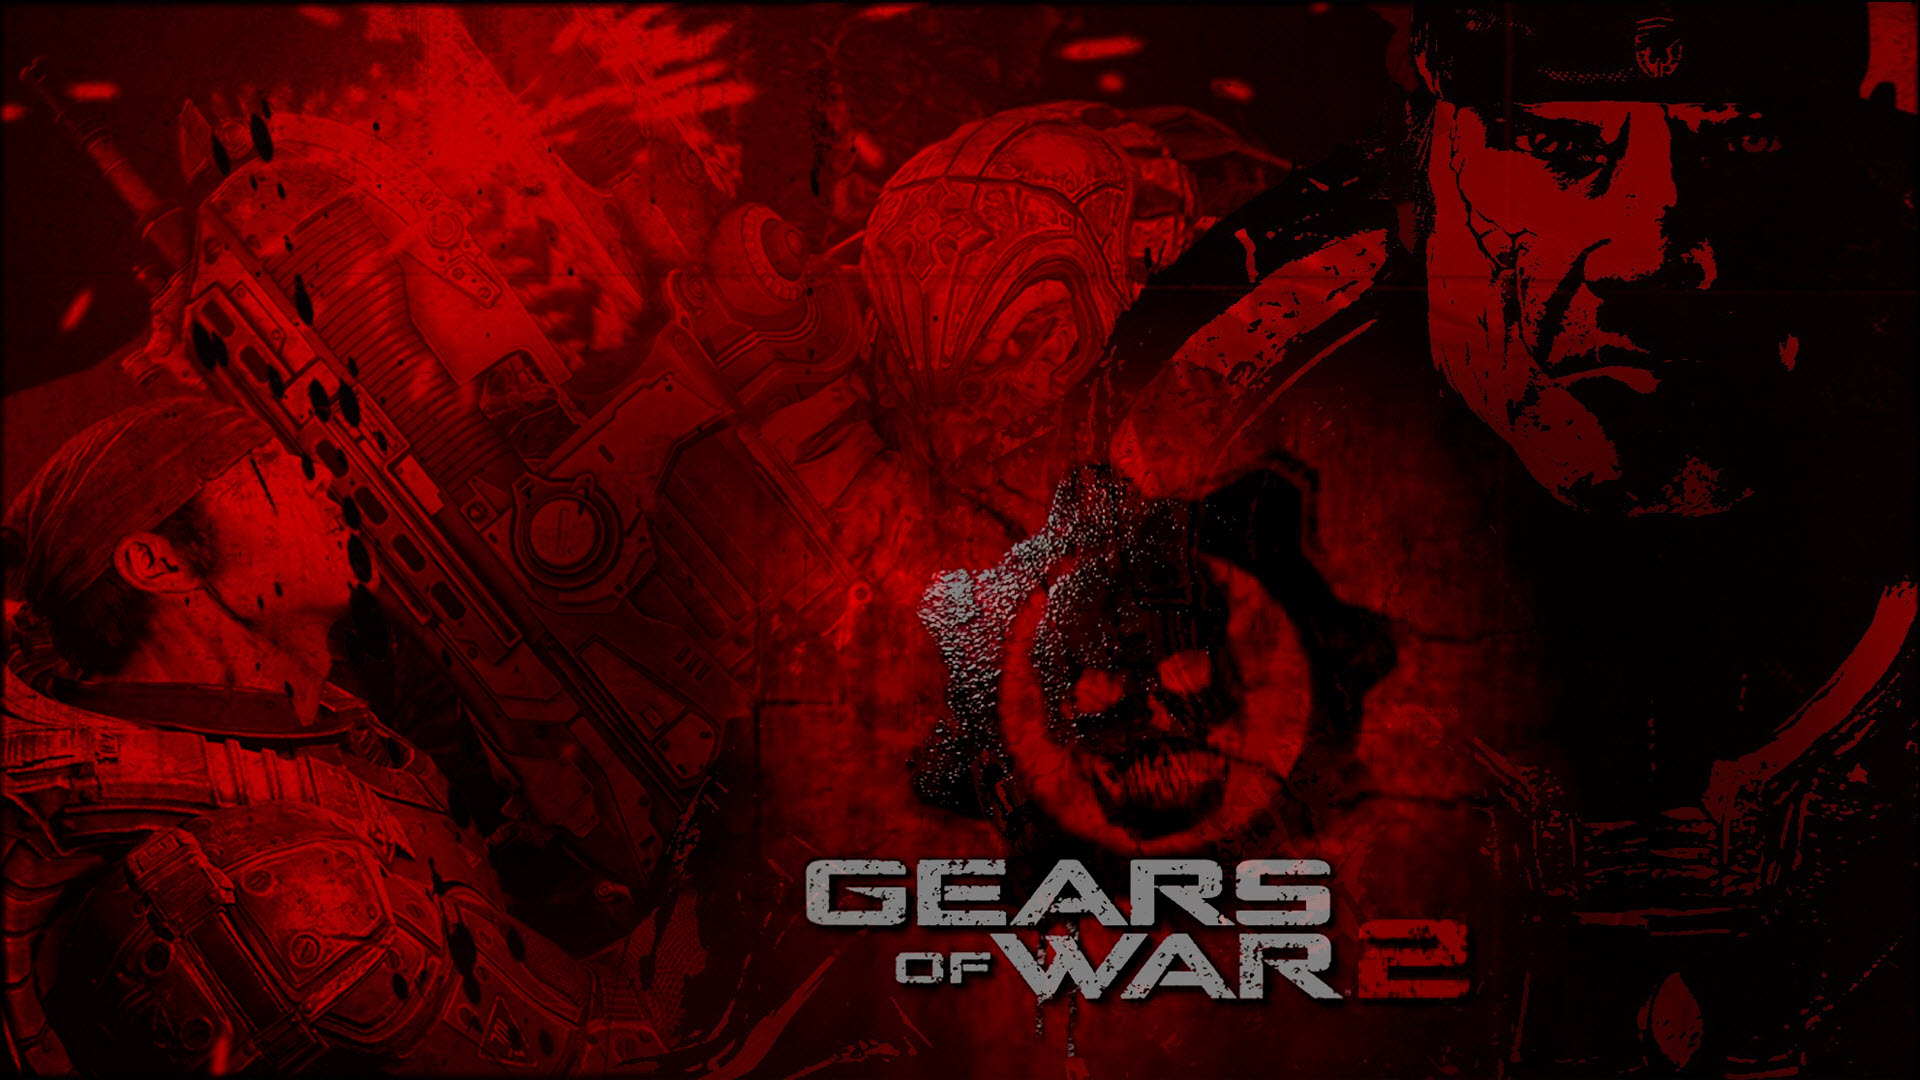 gears of war 2 game wallpapers | wallpapers hd